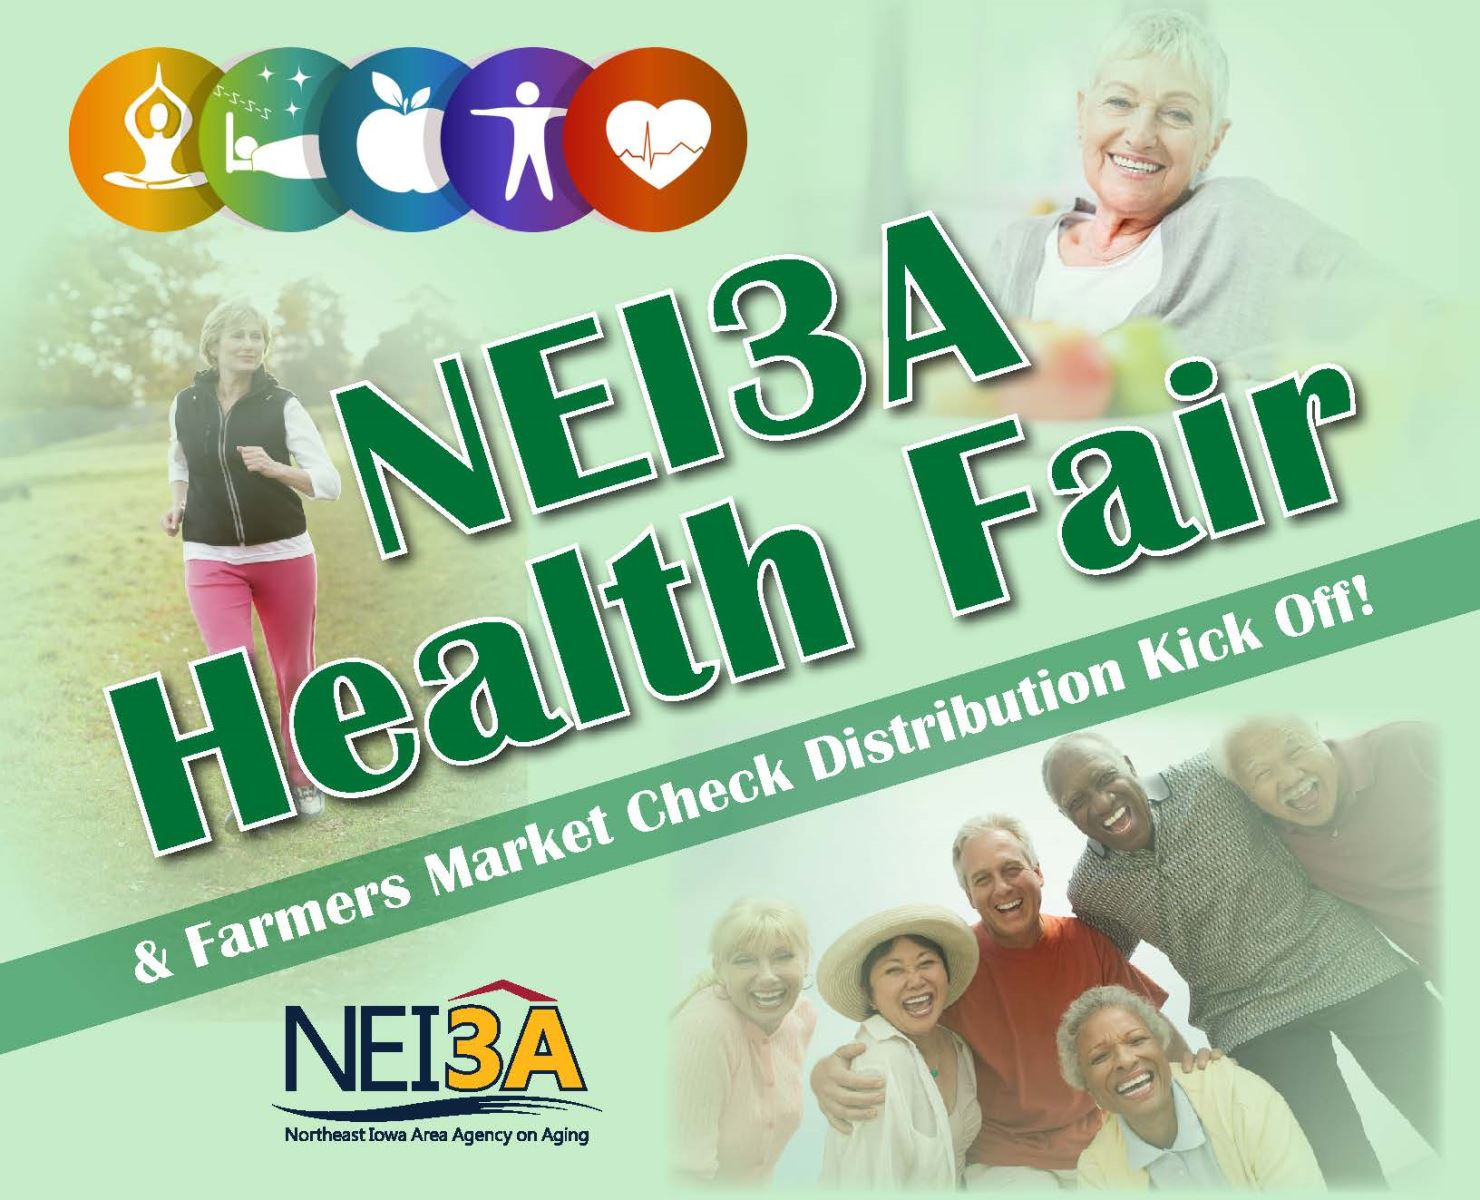 NEI3A Hosting Health Fairs and Farmers Market Coupon Distribution Kickoff